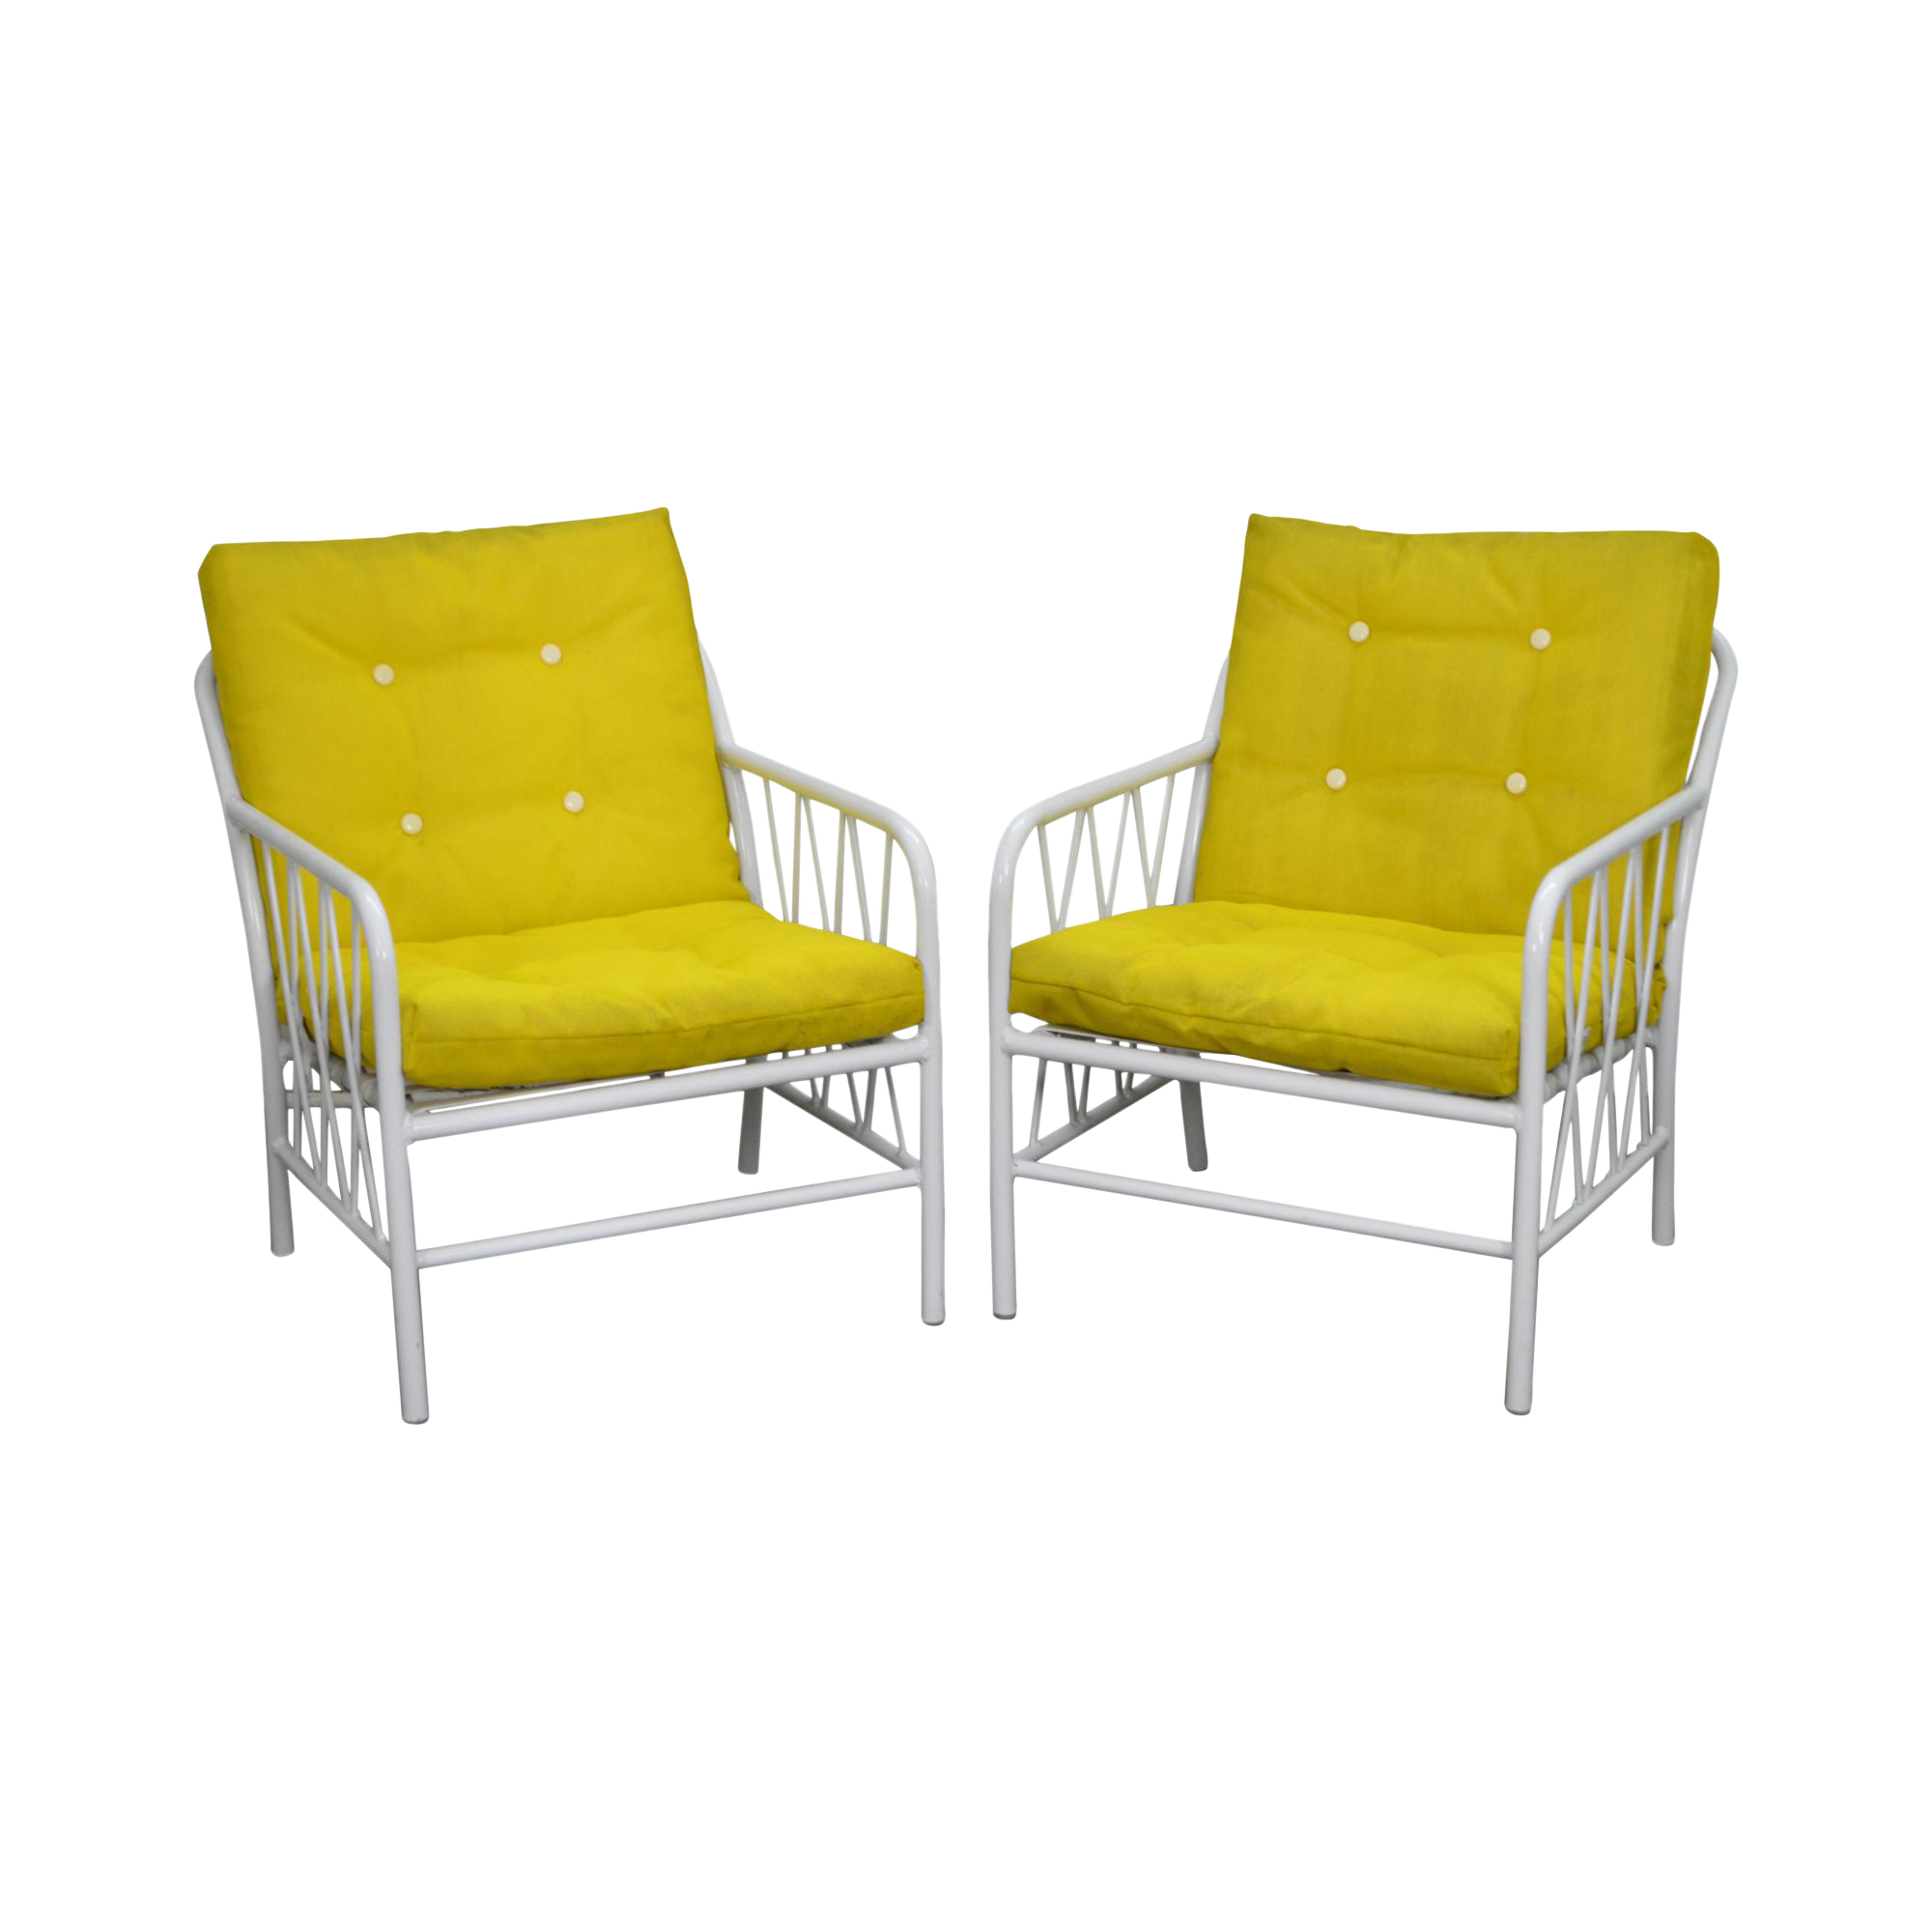 Awesome Brown Jordan Style Mid Century White Patio Lounge Chairs   A Pair